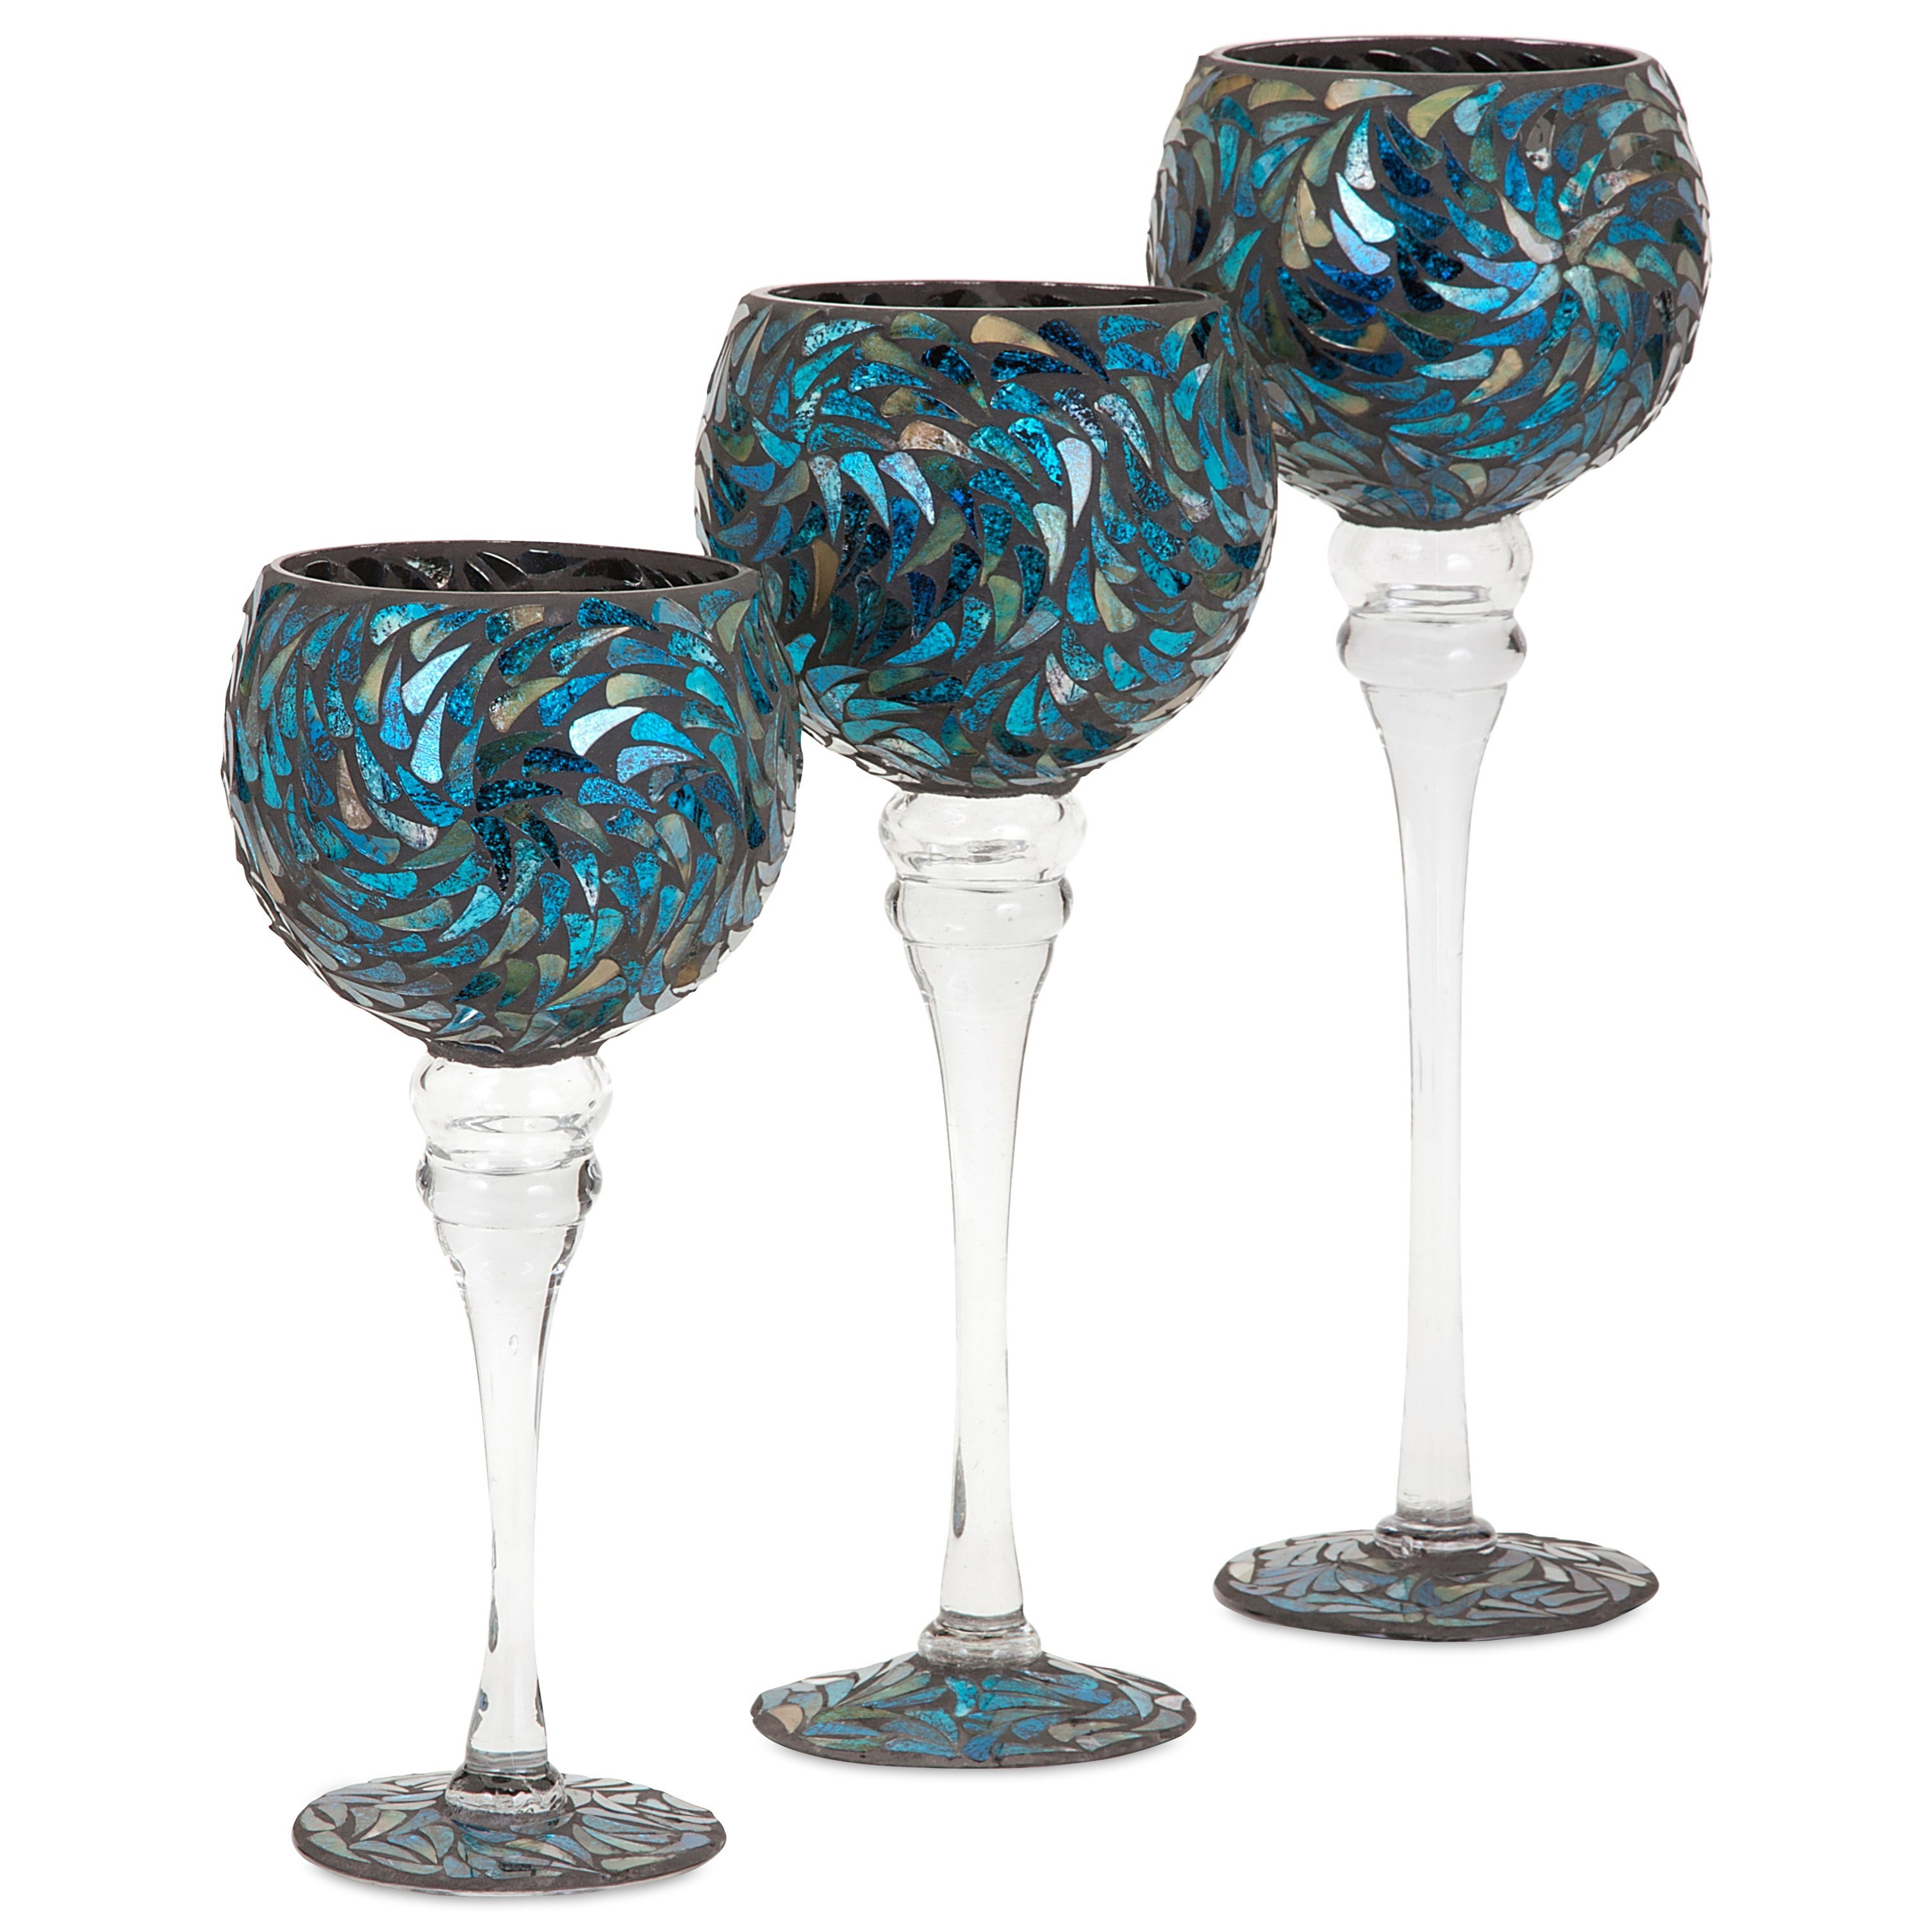 Peacock Mosaic Votive Holders - Set of 3